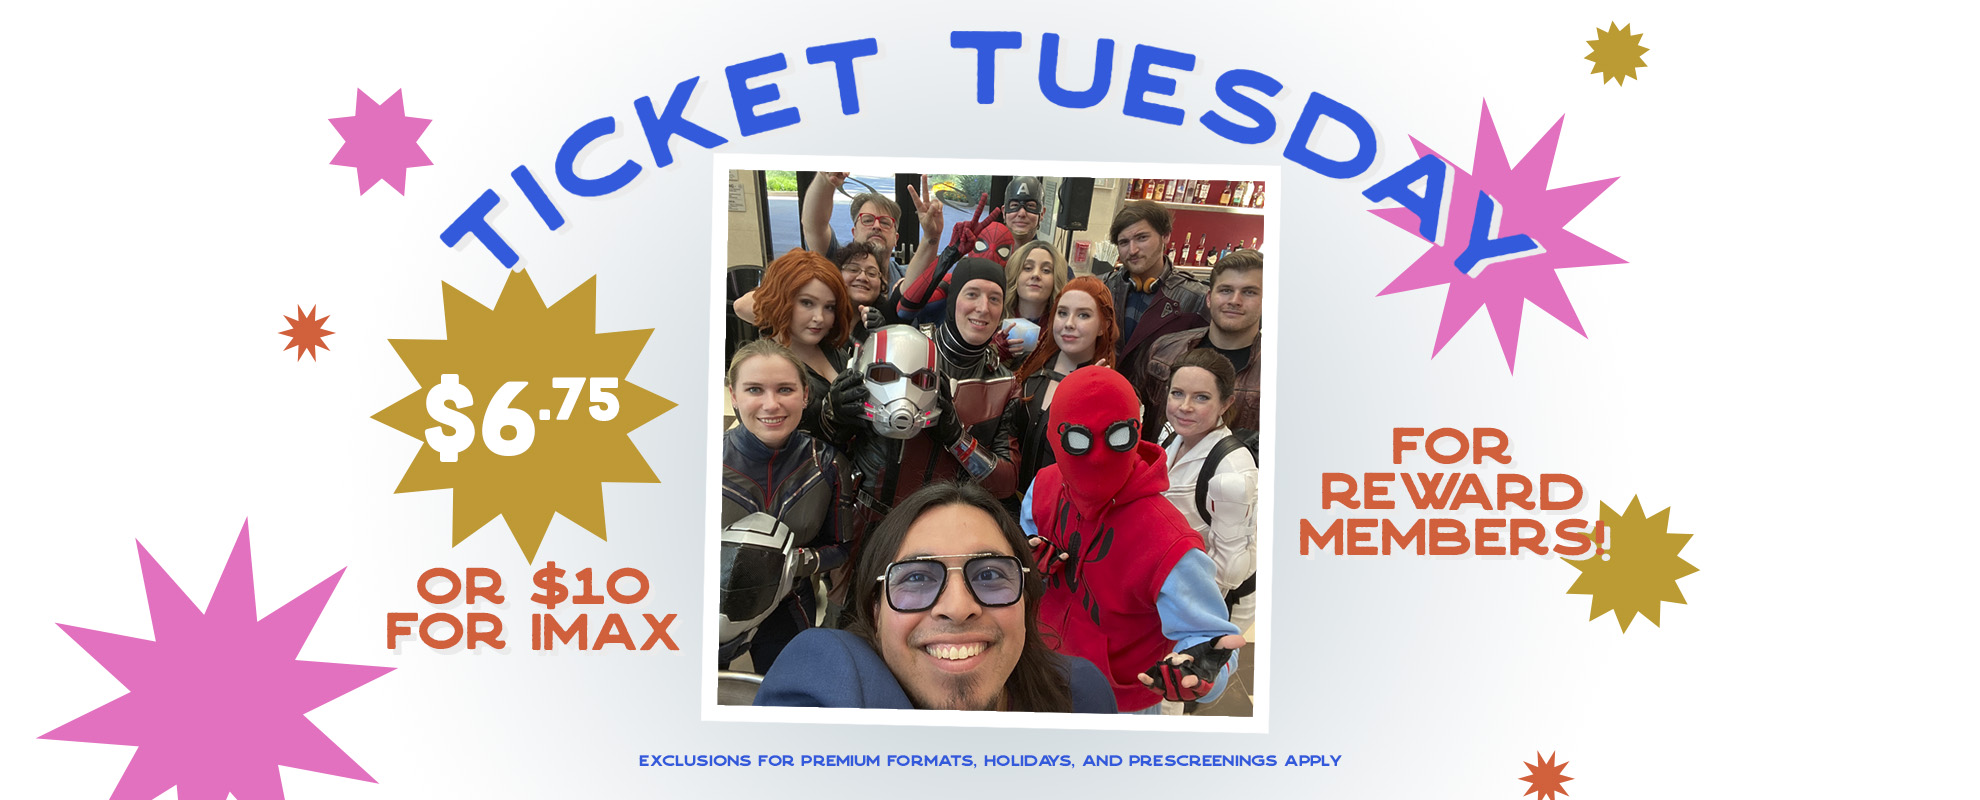 $6.75 Tuesday Ticket with IMAX image